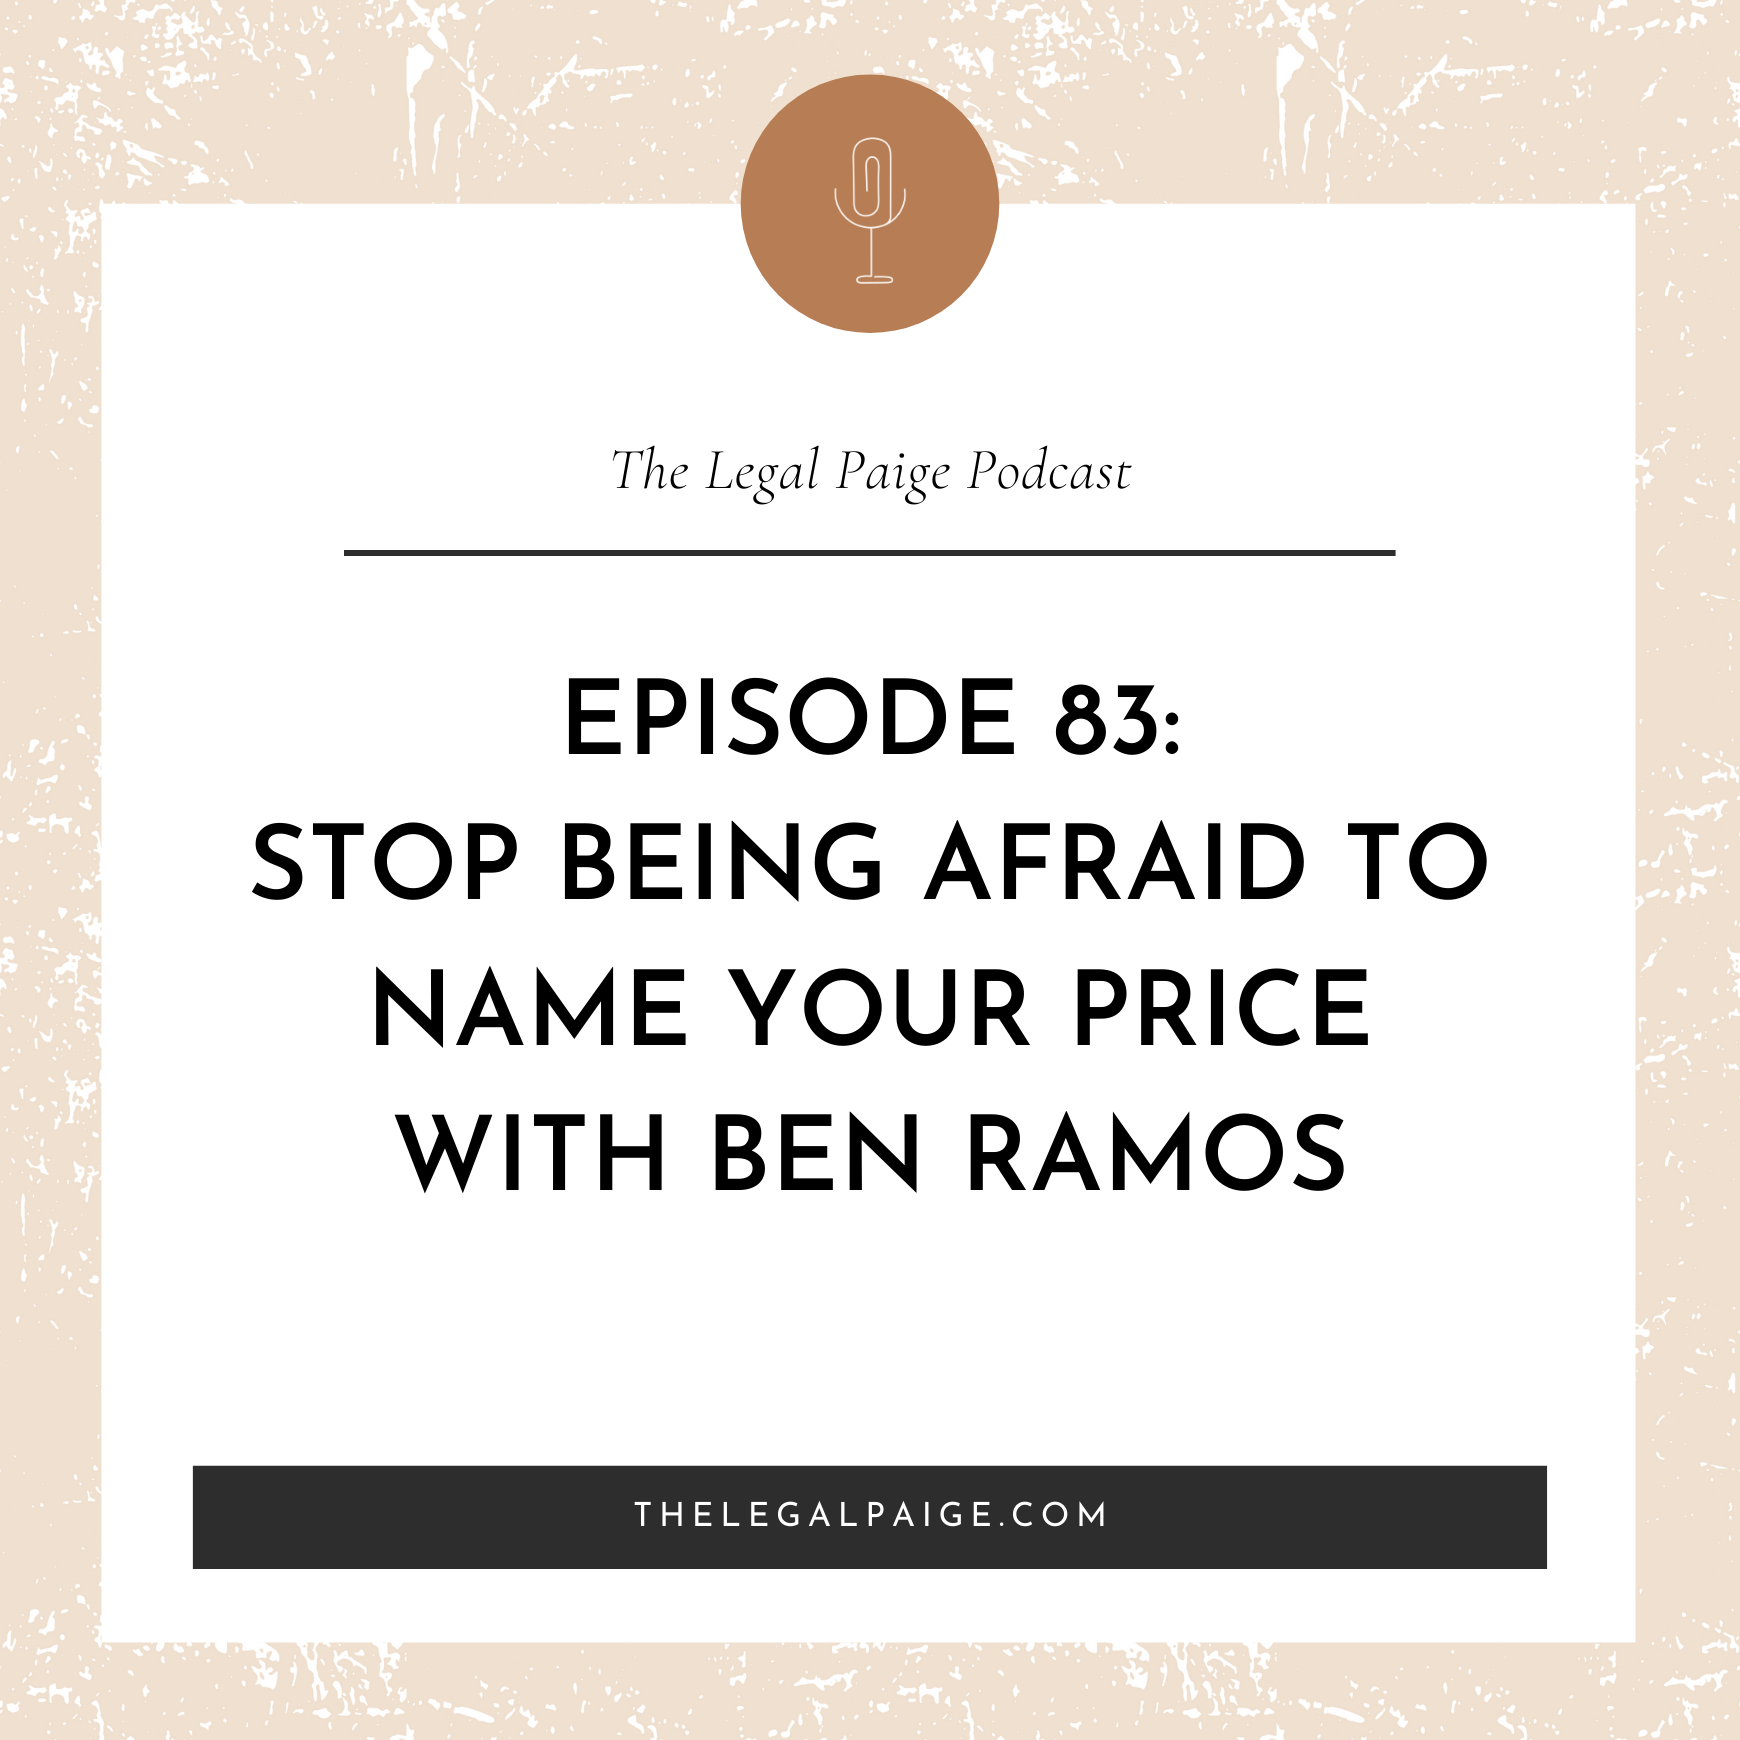 Episode 83: Stop Being Afraid To Name Your Price With Ben Ramos